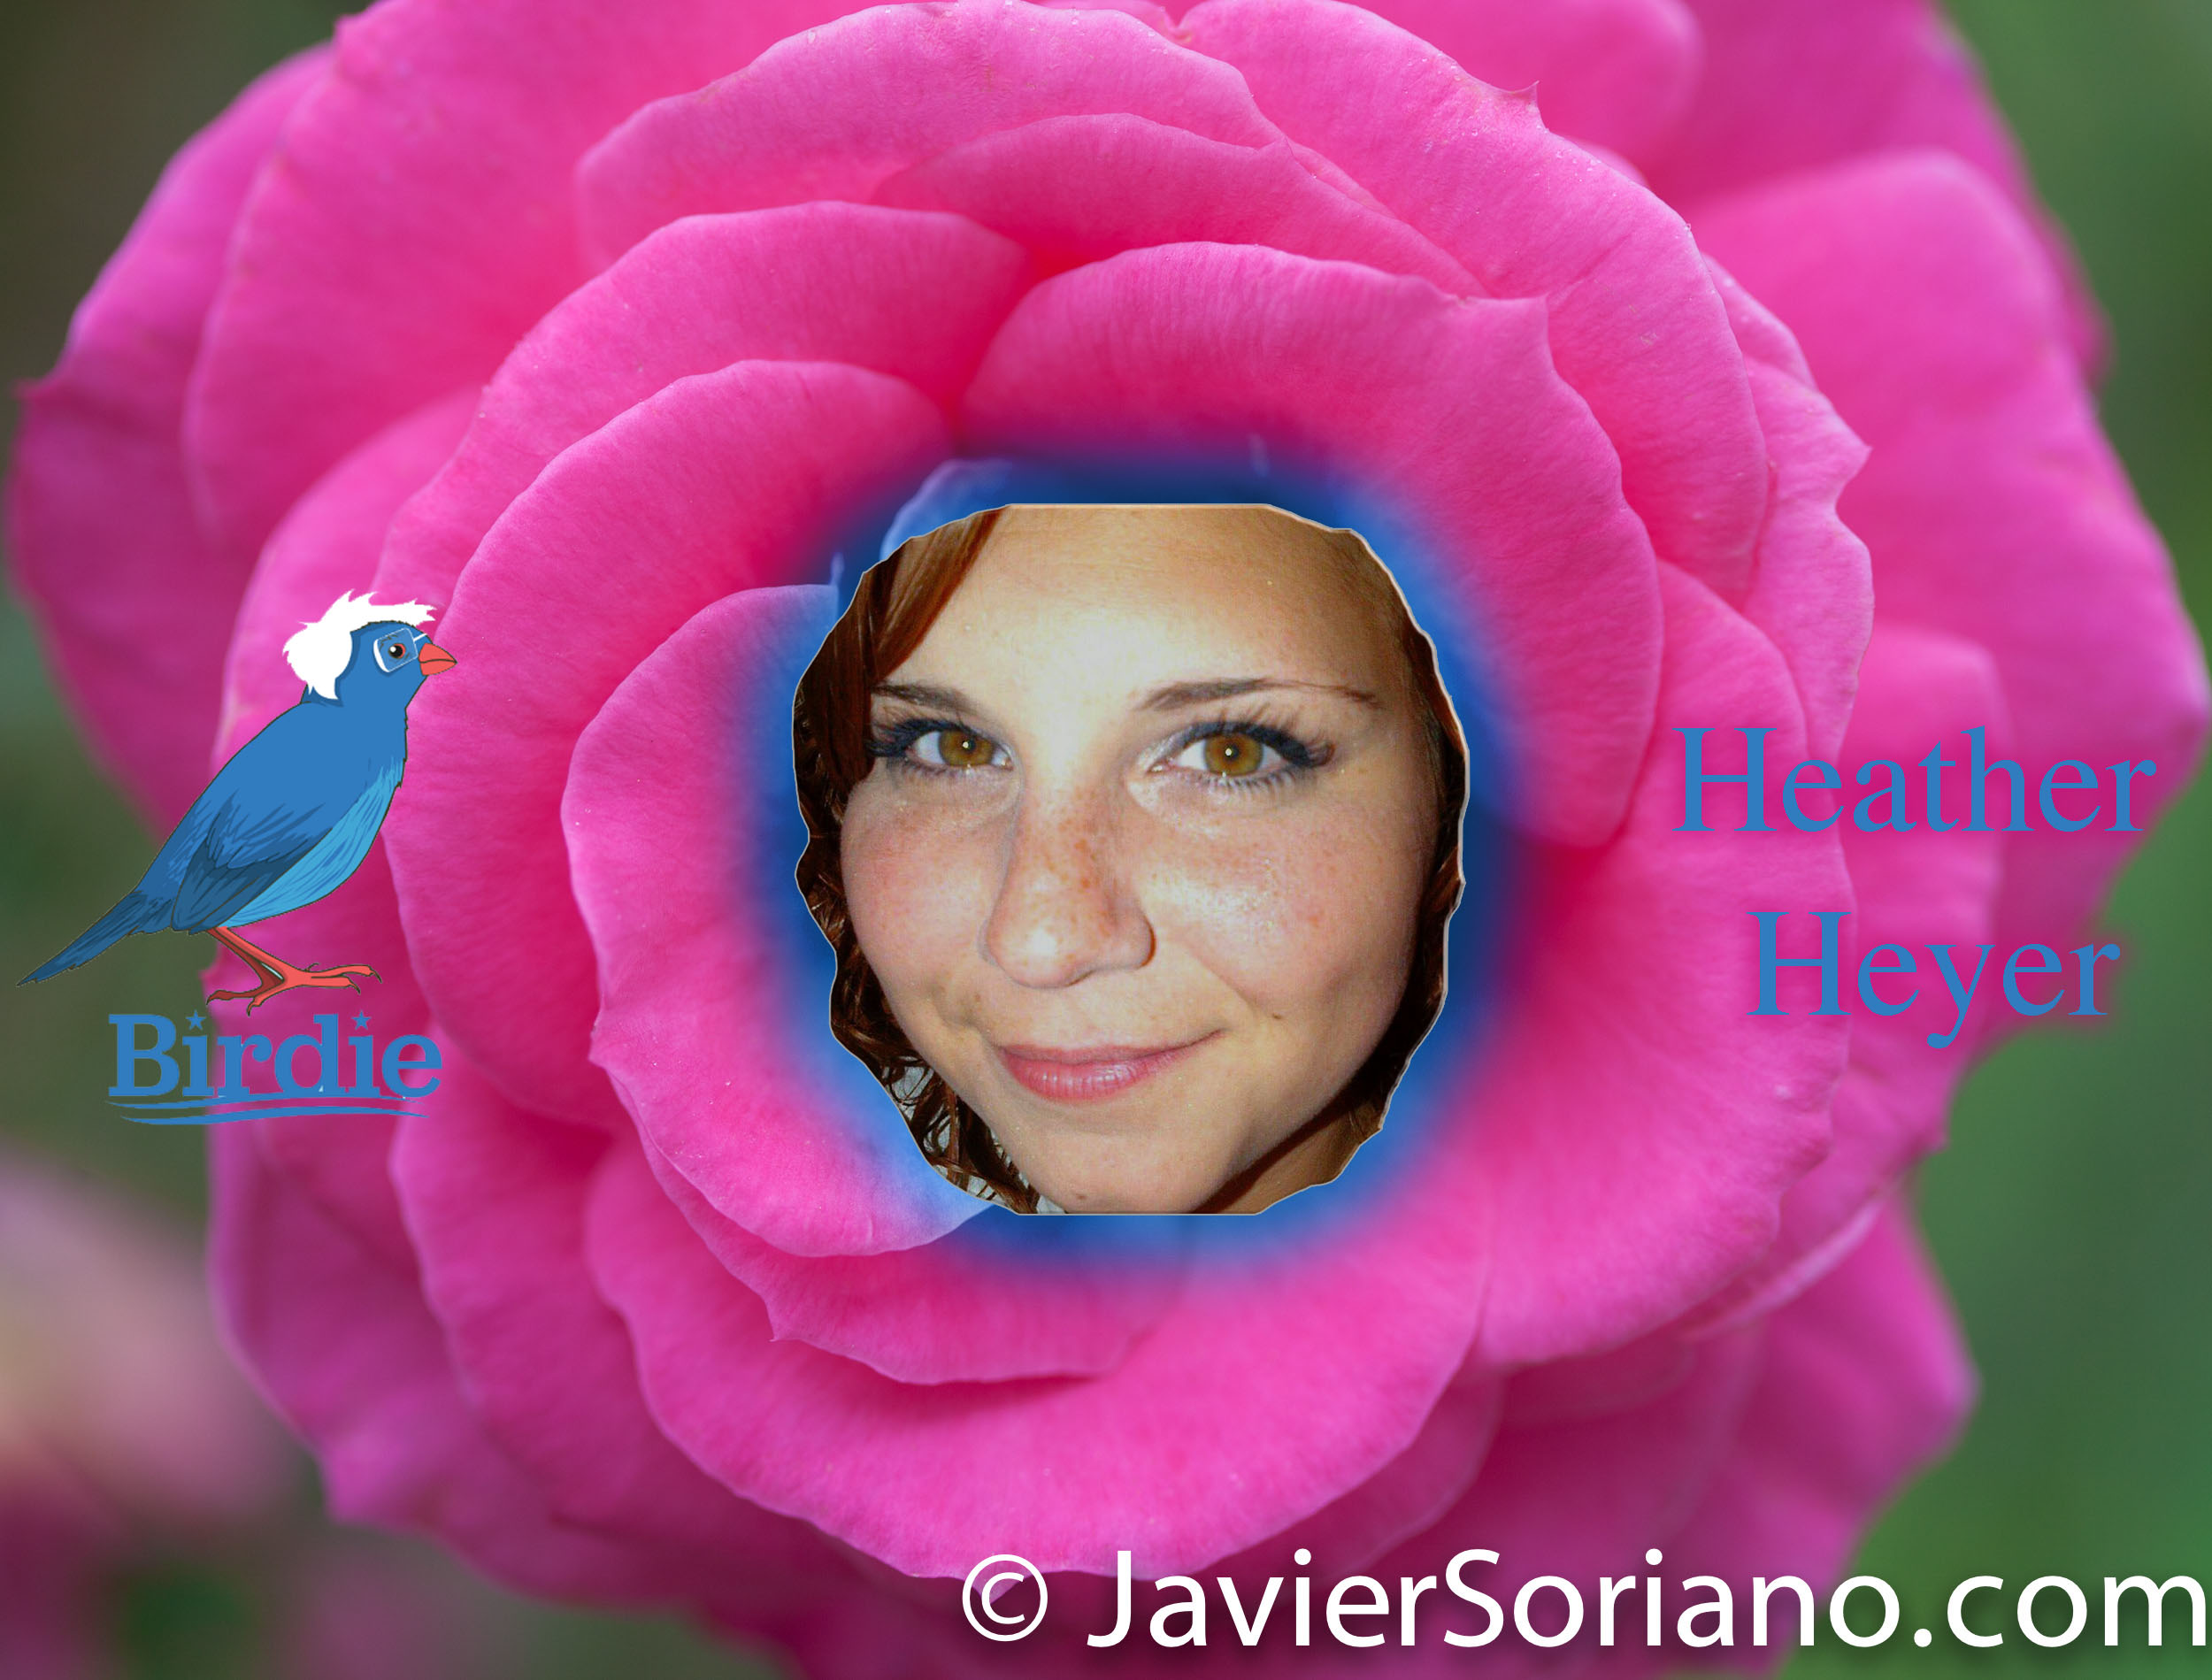 "I made this in honor of Heather Heyer. On Saturday, August 12, 2017, Heather Heyer was killed by a terrorist white man as she protested Neo-Nazism and white supremacy in Charlottesville, Virginia. Heather loved people! My condolences to her family. NOTE: I took her picture from her Facebook account and ""Birdie Sanders"" from the Internet. I took the rose picture at the Brooklyn Botanic Garden in NYC. Artwork by Javier Soriano/www.JavierSoriano.com"